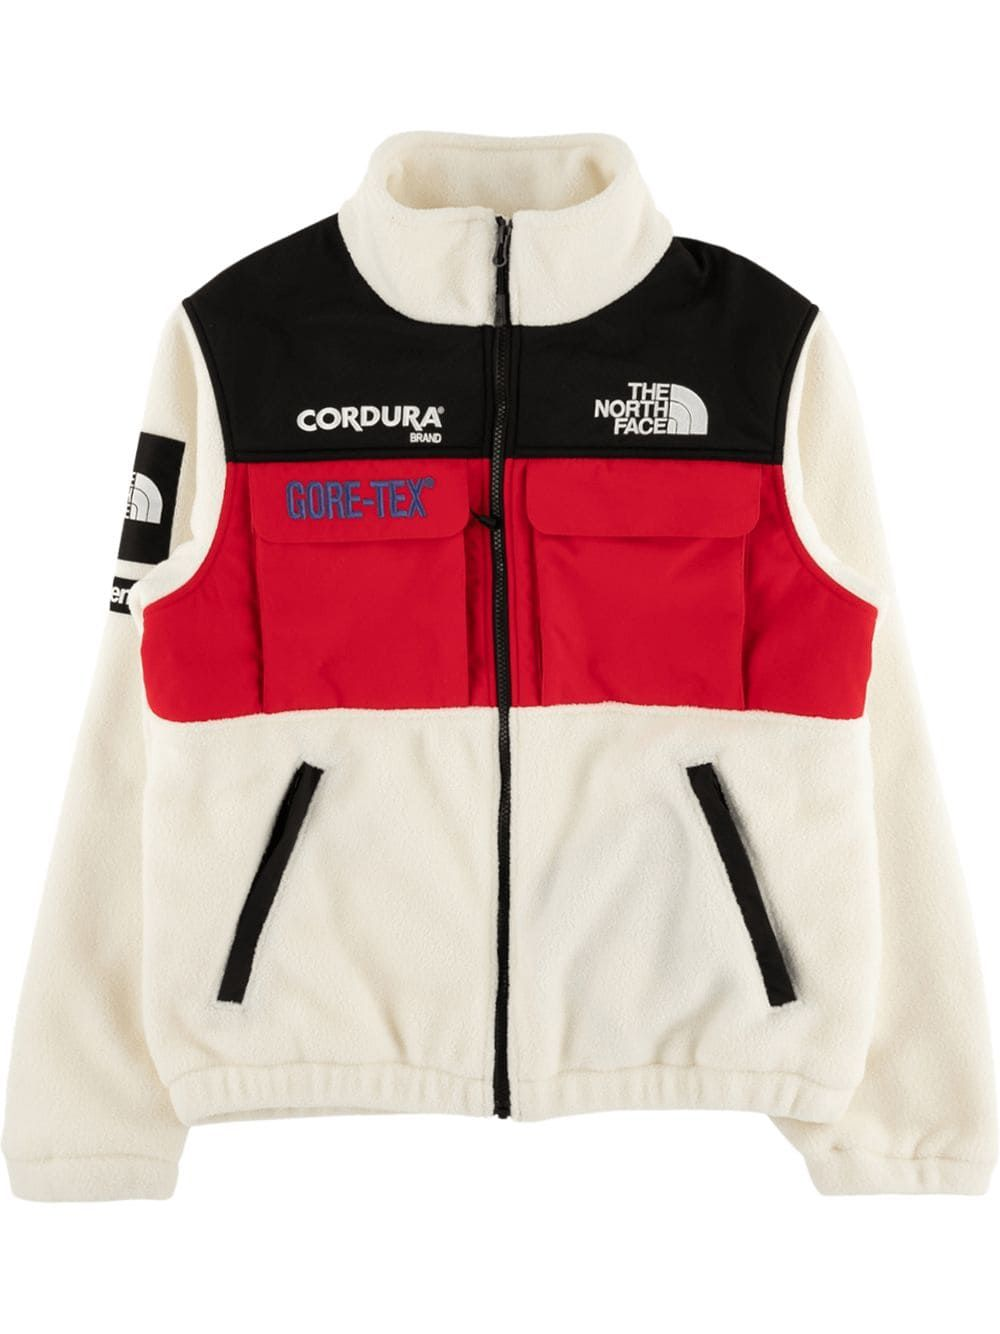 Supreme X The North Face Expedition Fleece Jacket Farfetch North Face Outfits North Face Jacket The North Face [ jpg ]